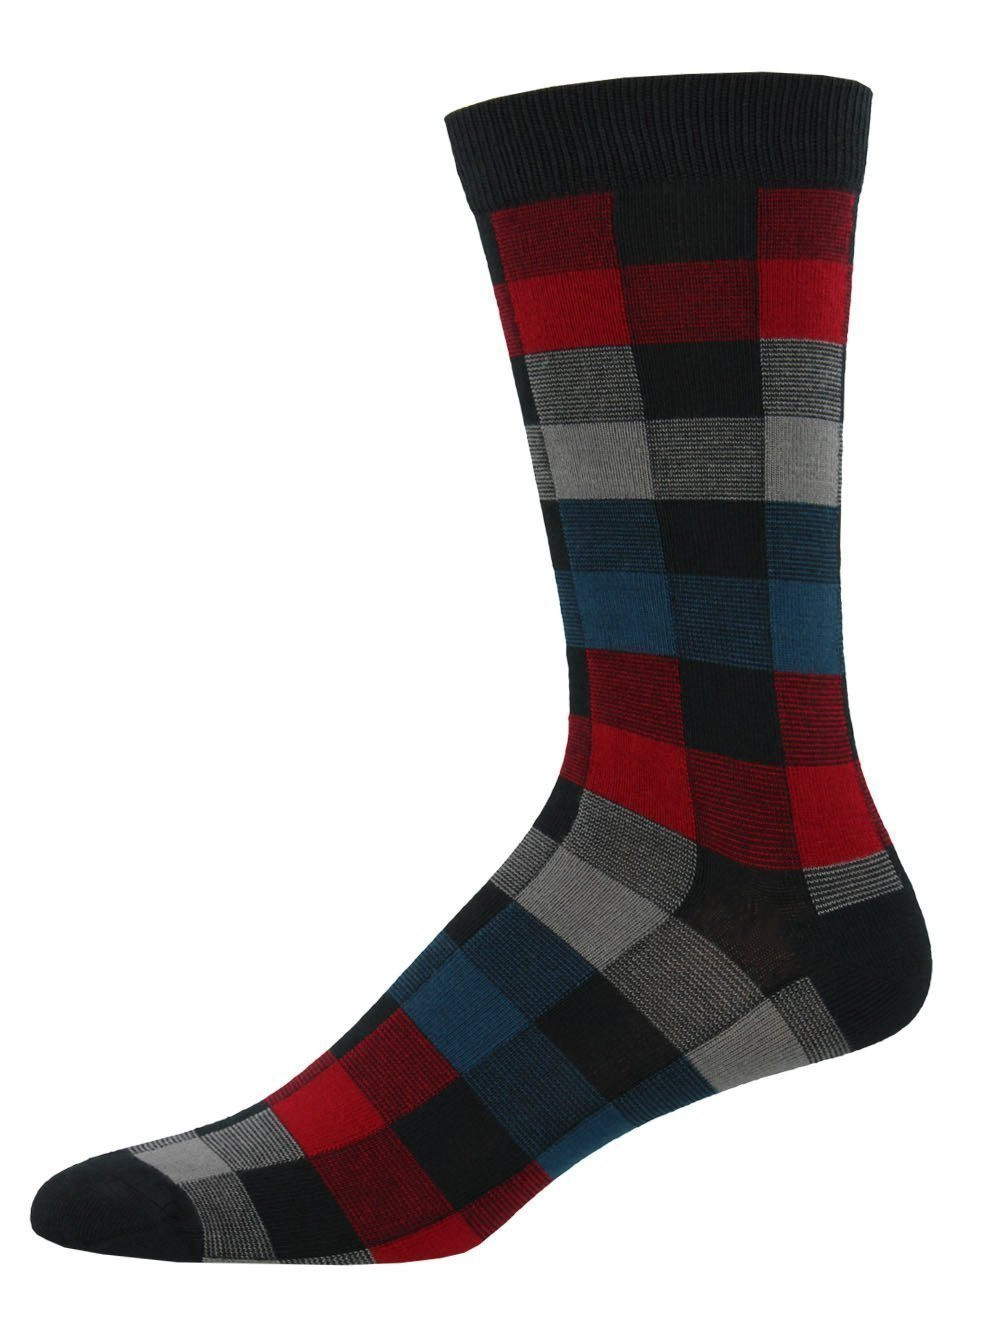 Socksmith - Bamboo Plaid Crew Socks | Men's - Knock Your Socks Off